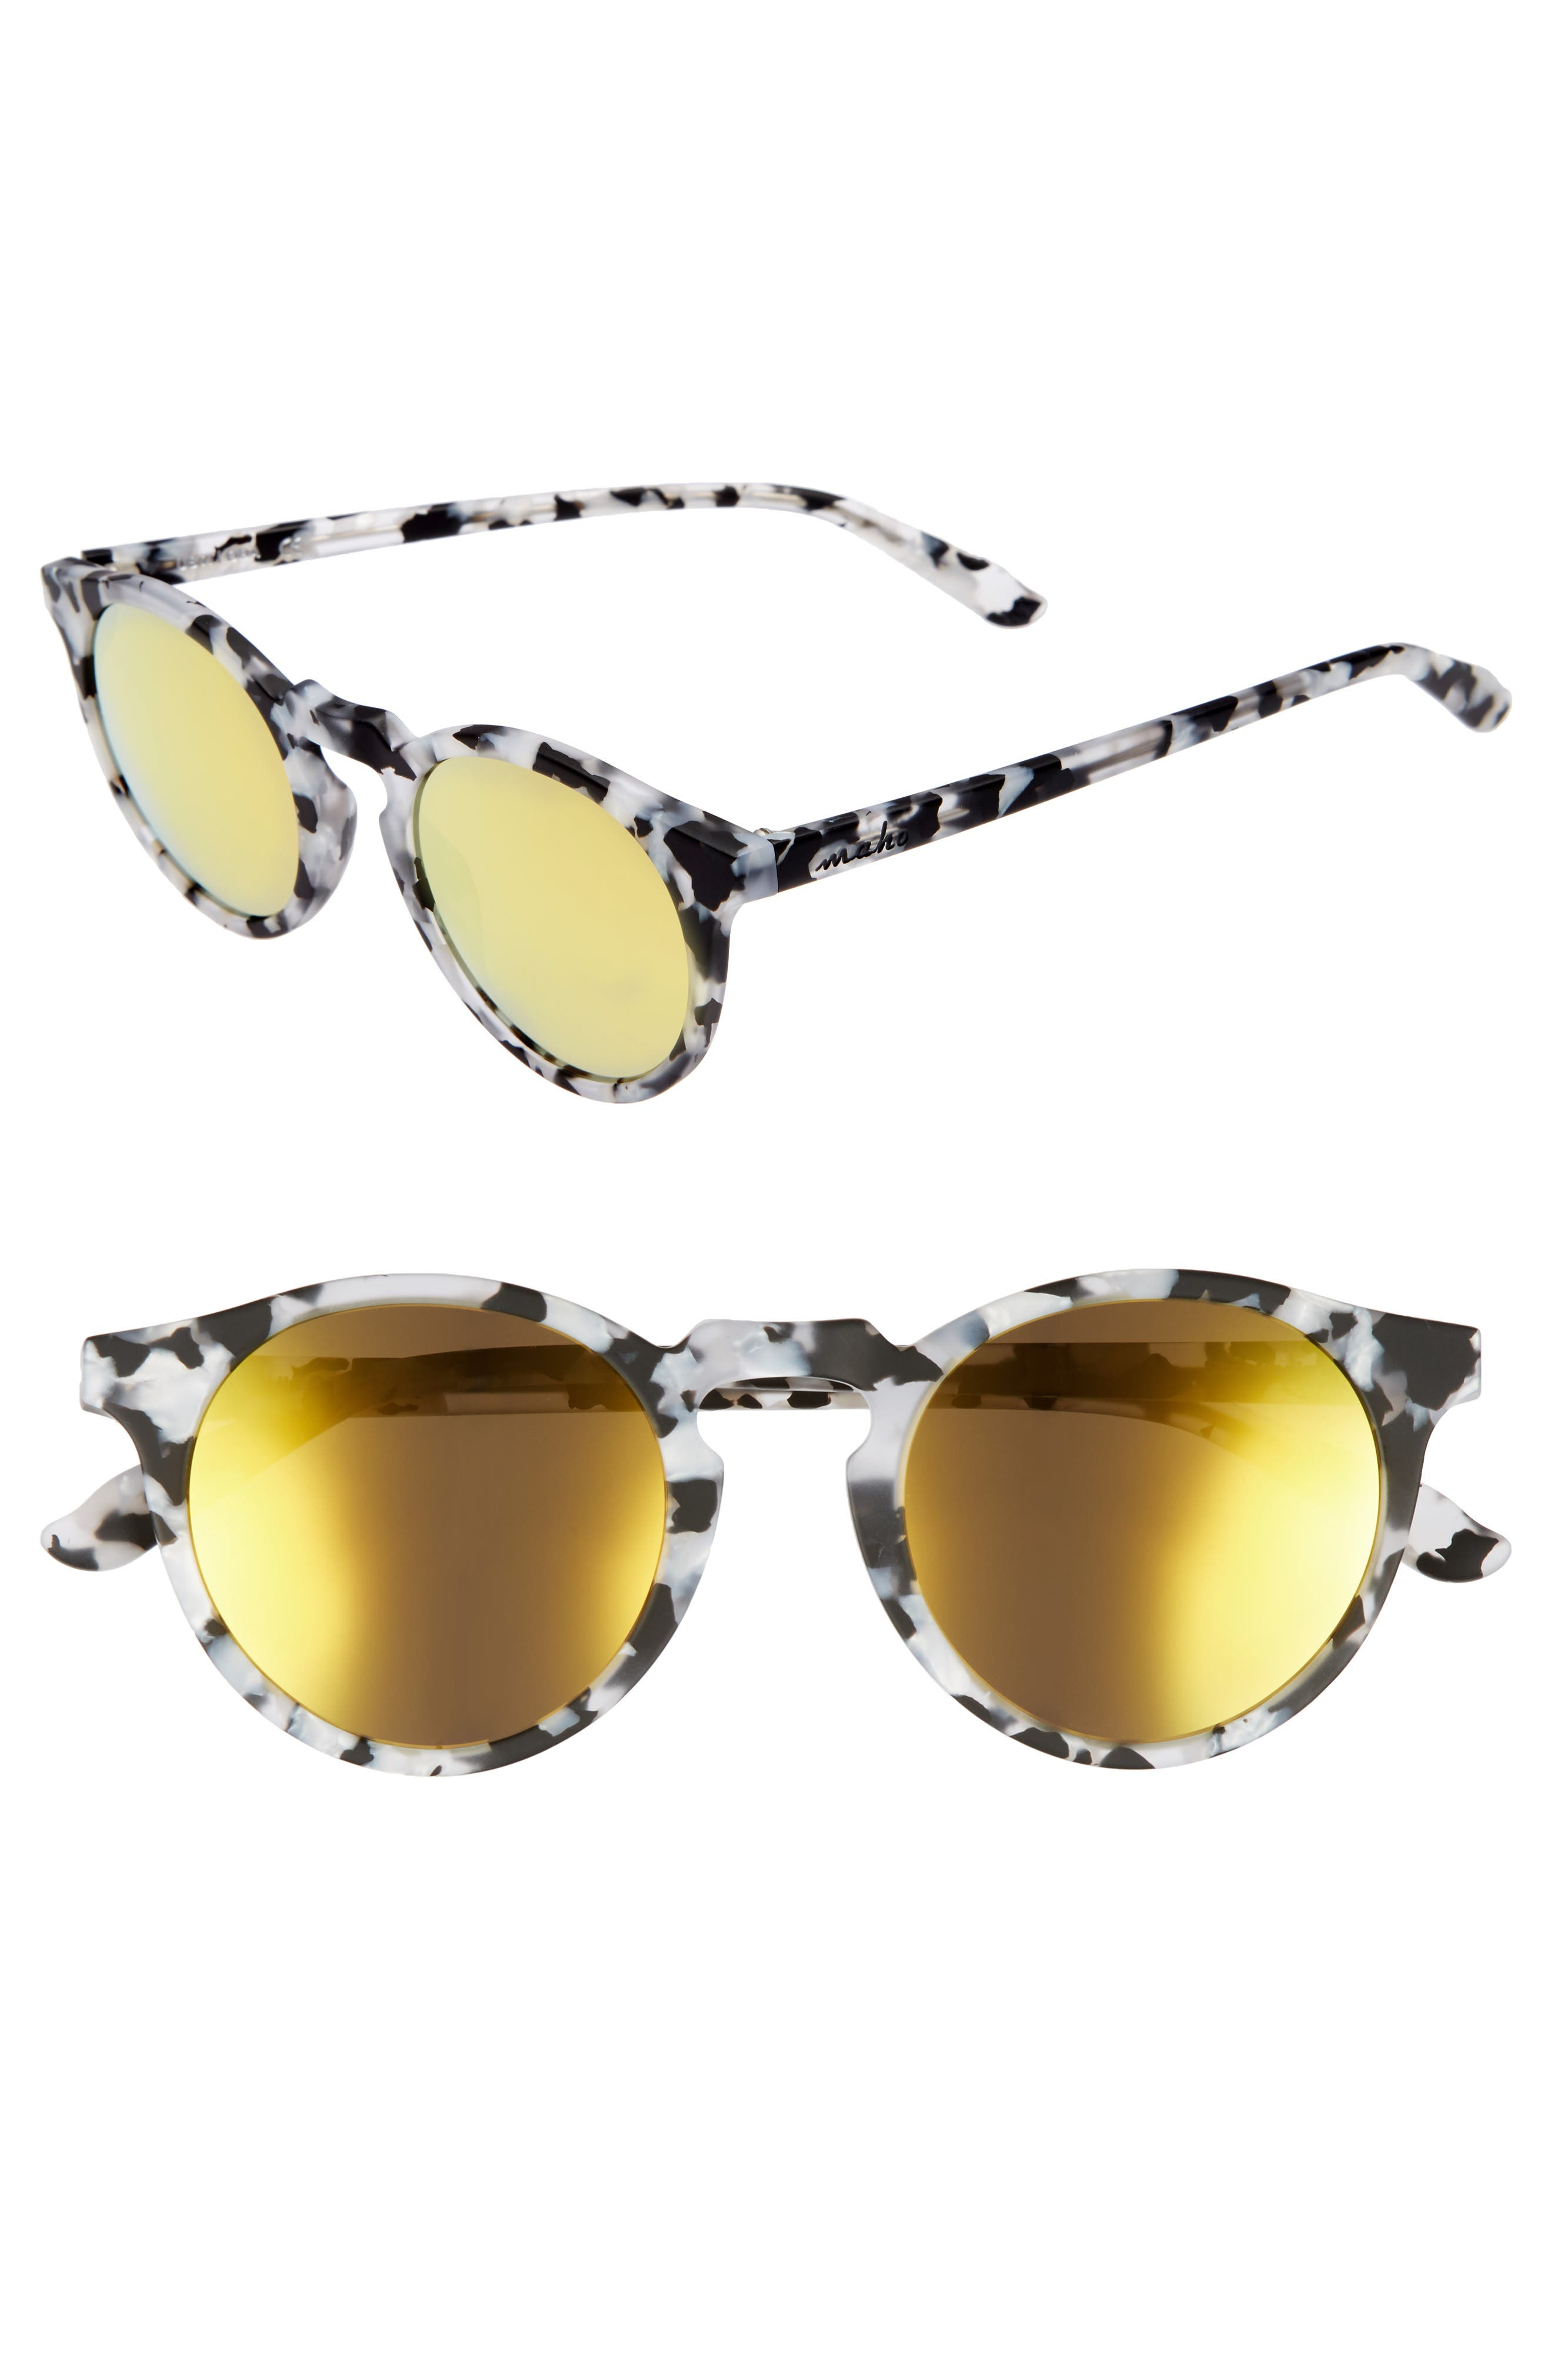 Stockholm 48mm Polarized Round Sunglasses,                         Main,                         color, Marble